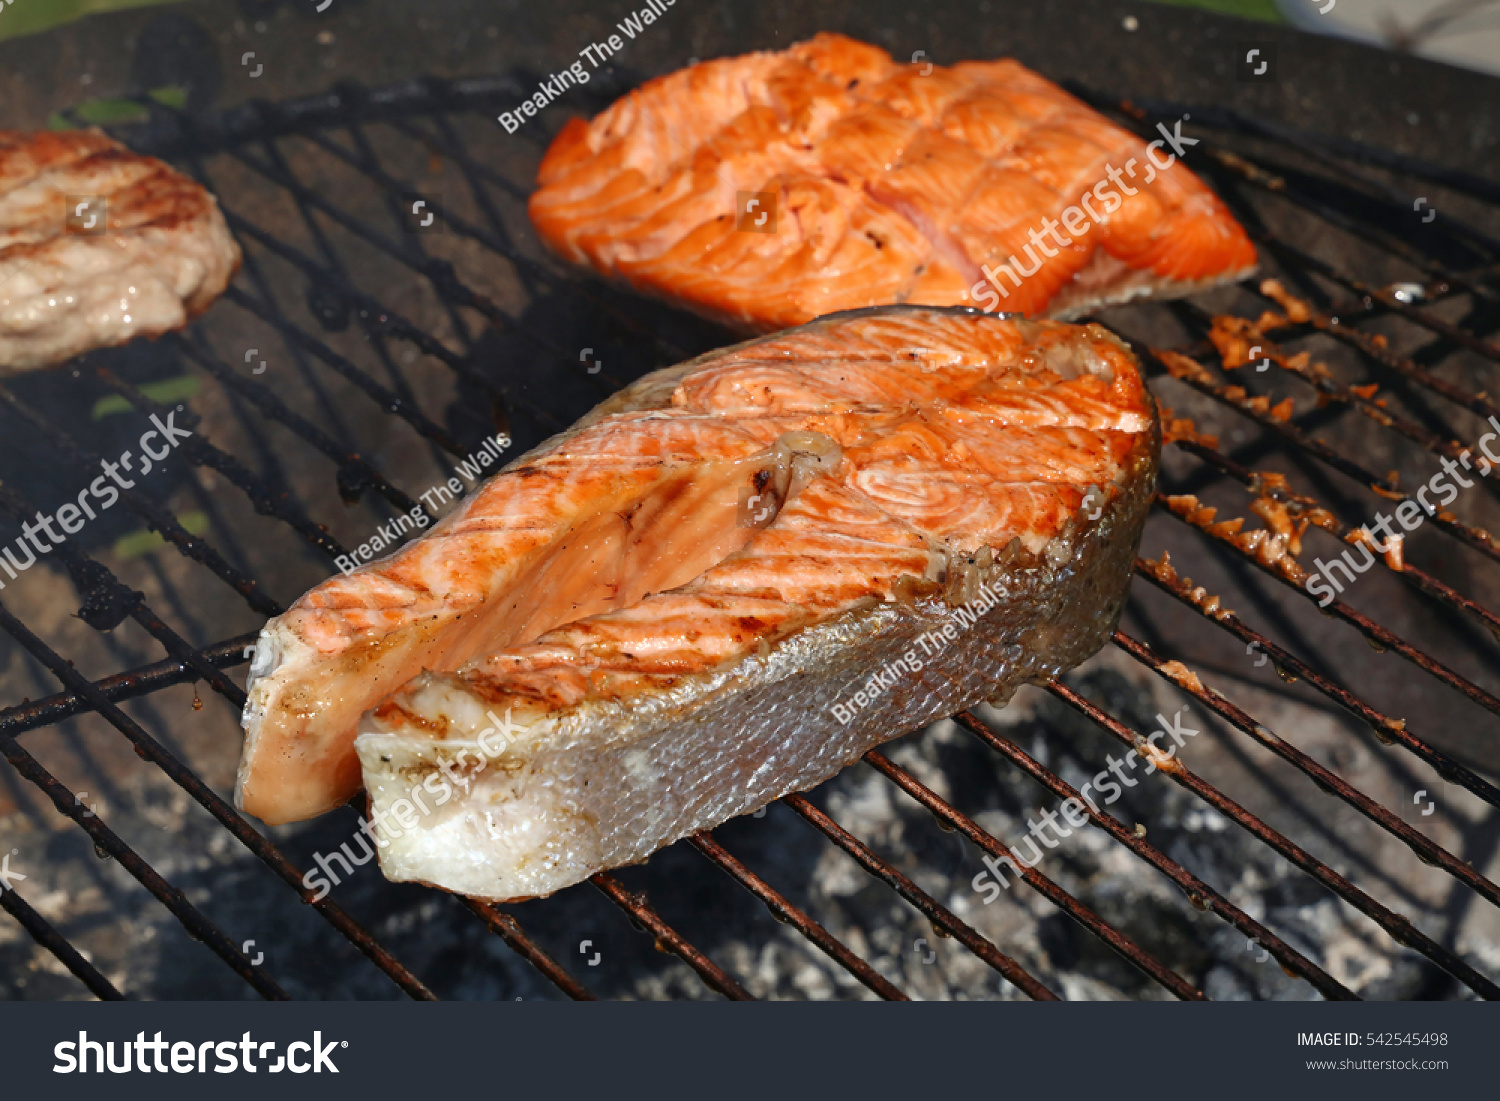 One grilled salmon fish steak barbecue stock photo for Bbq fish grill